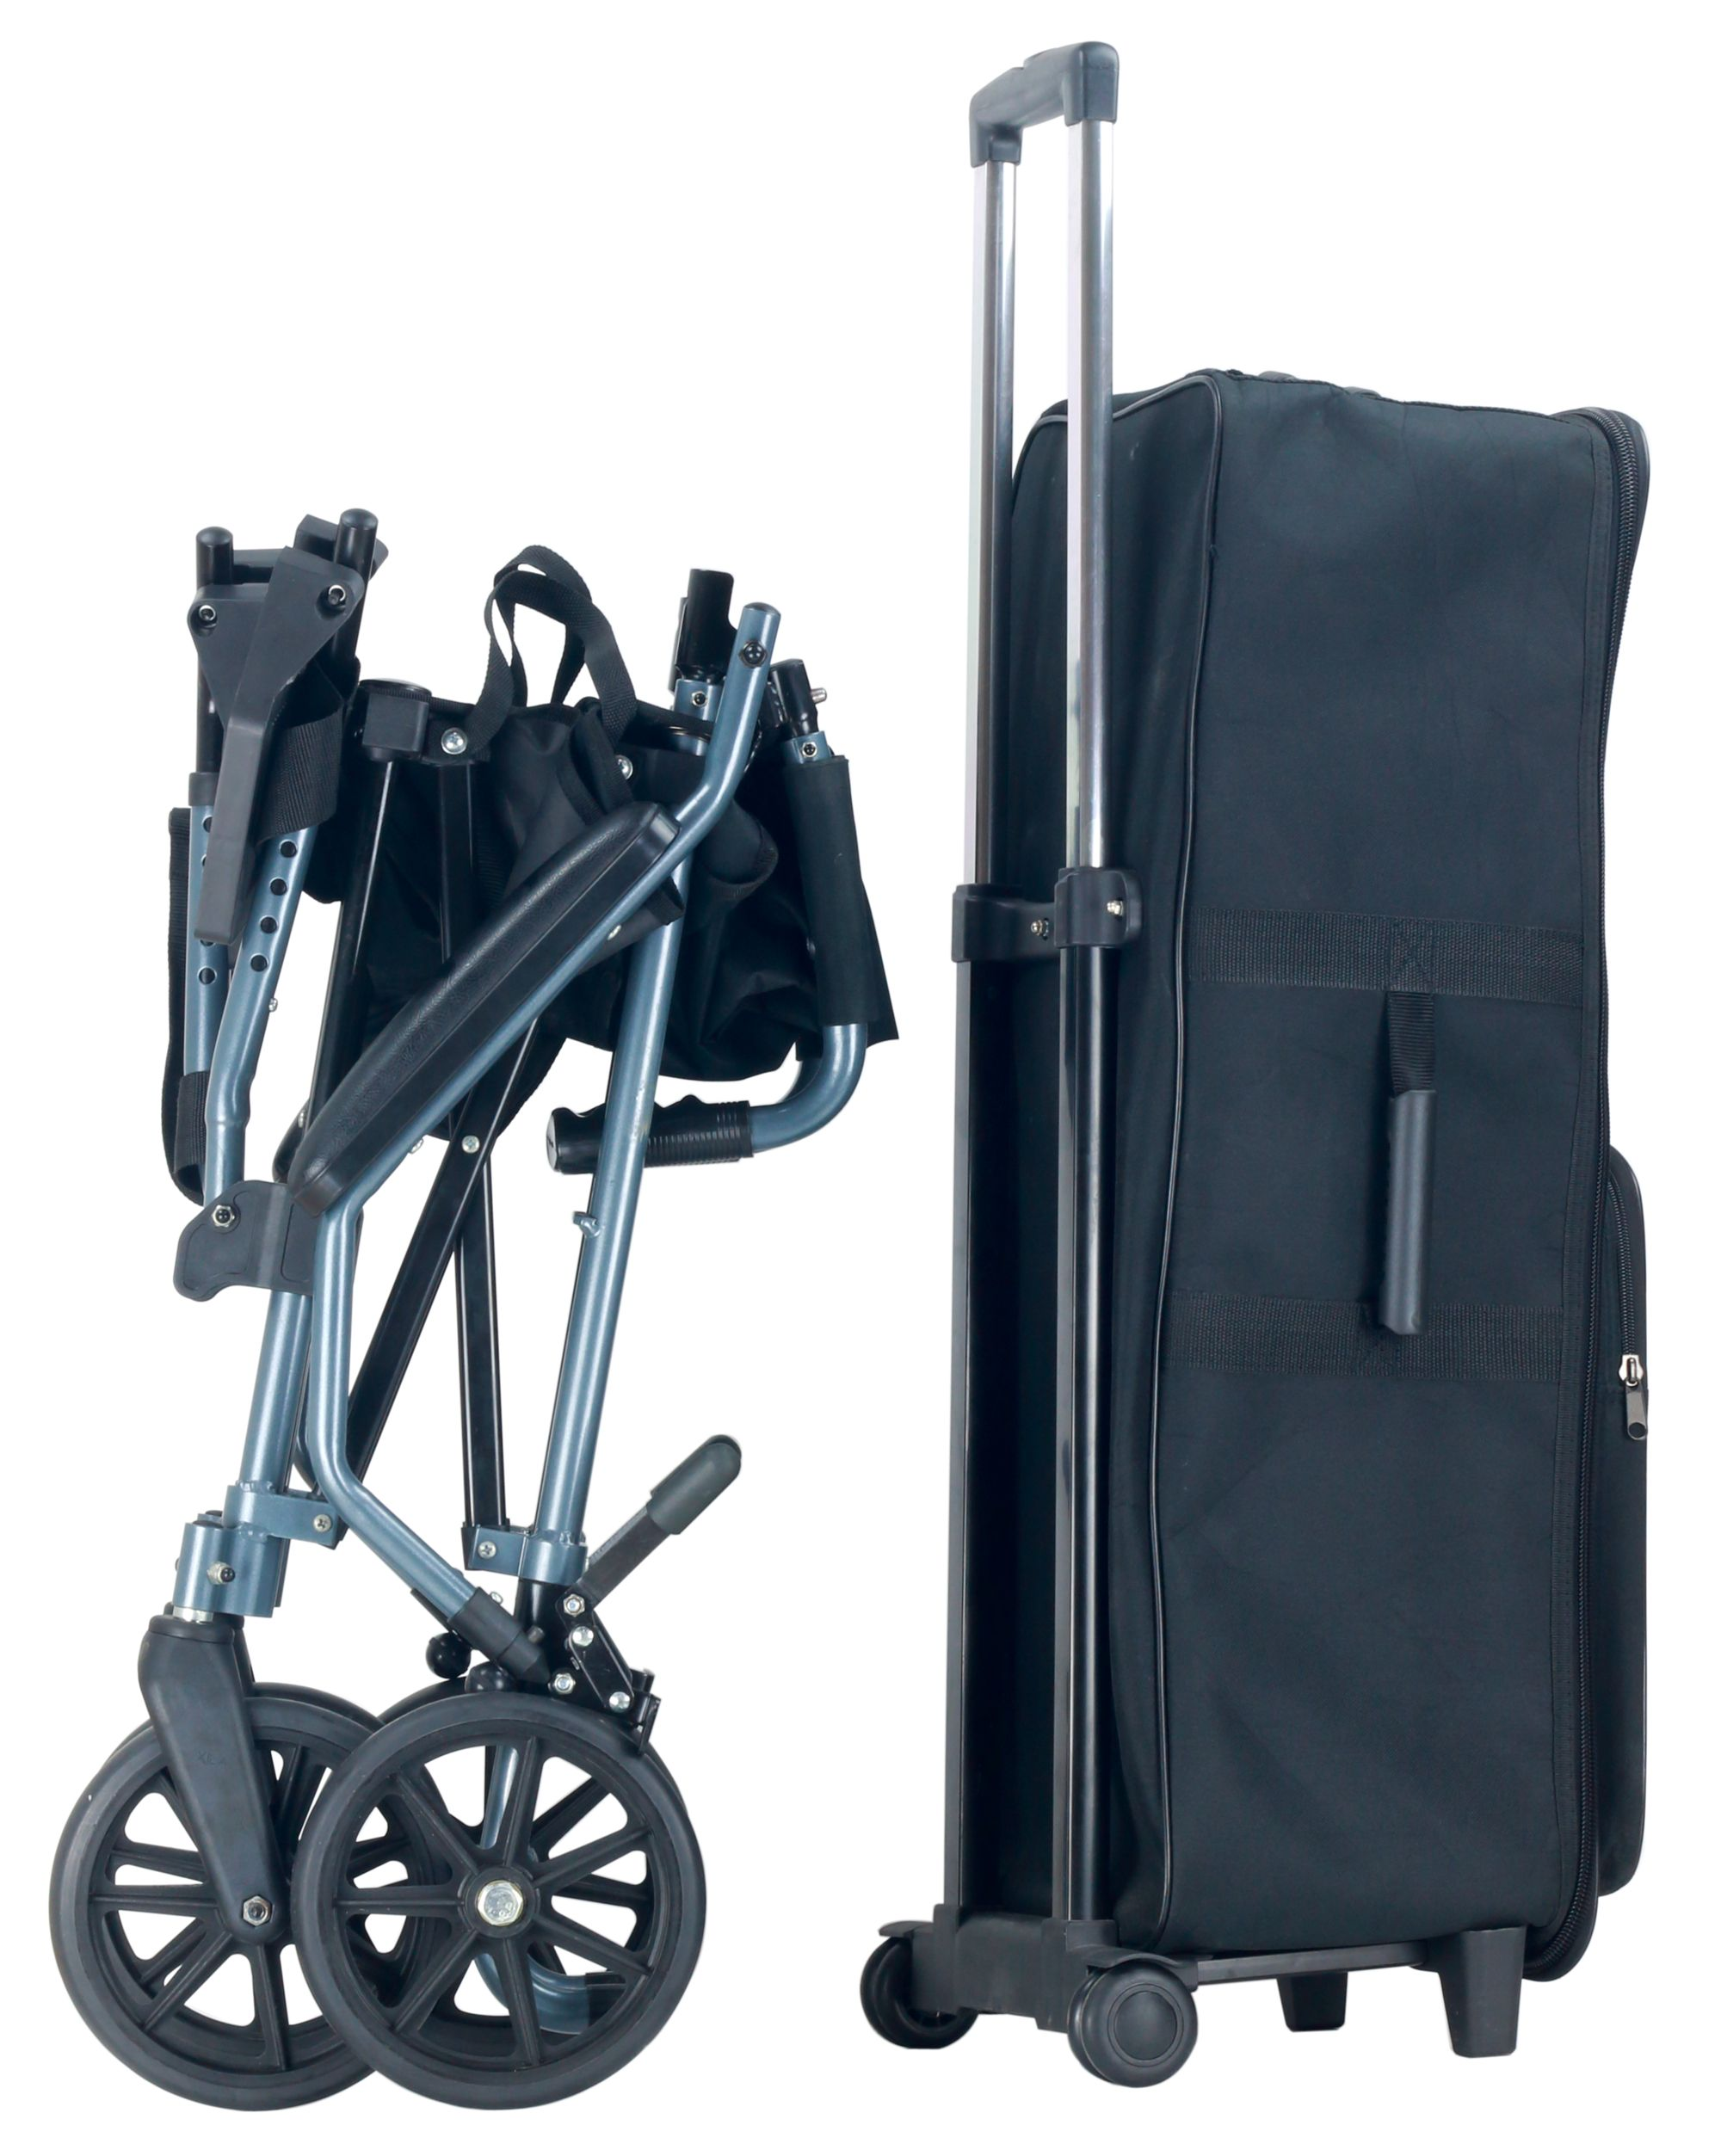 Travel Lite Transport Wheelchair in a Bag | Transport chair